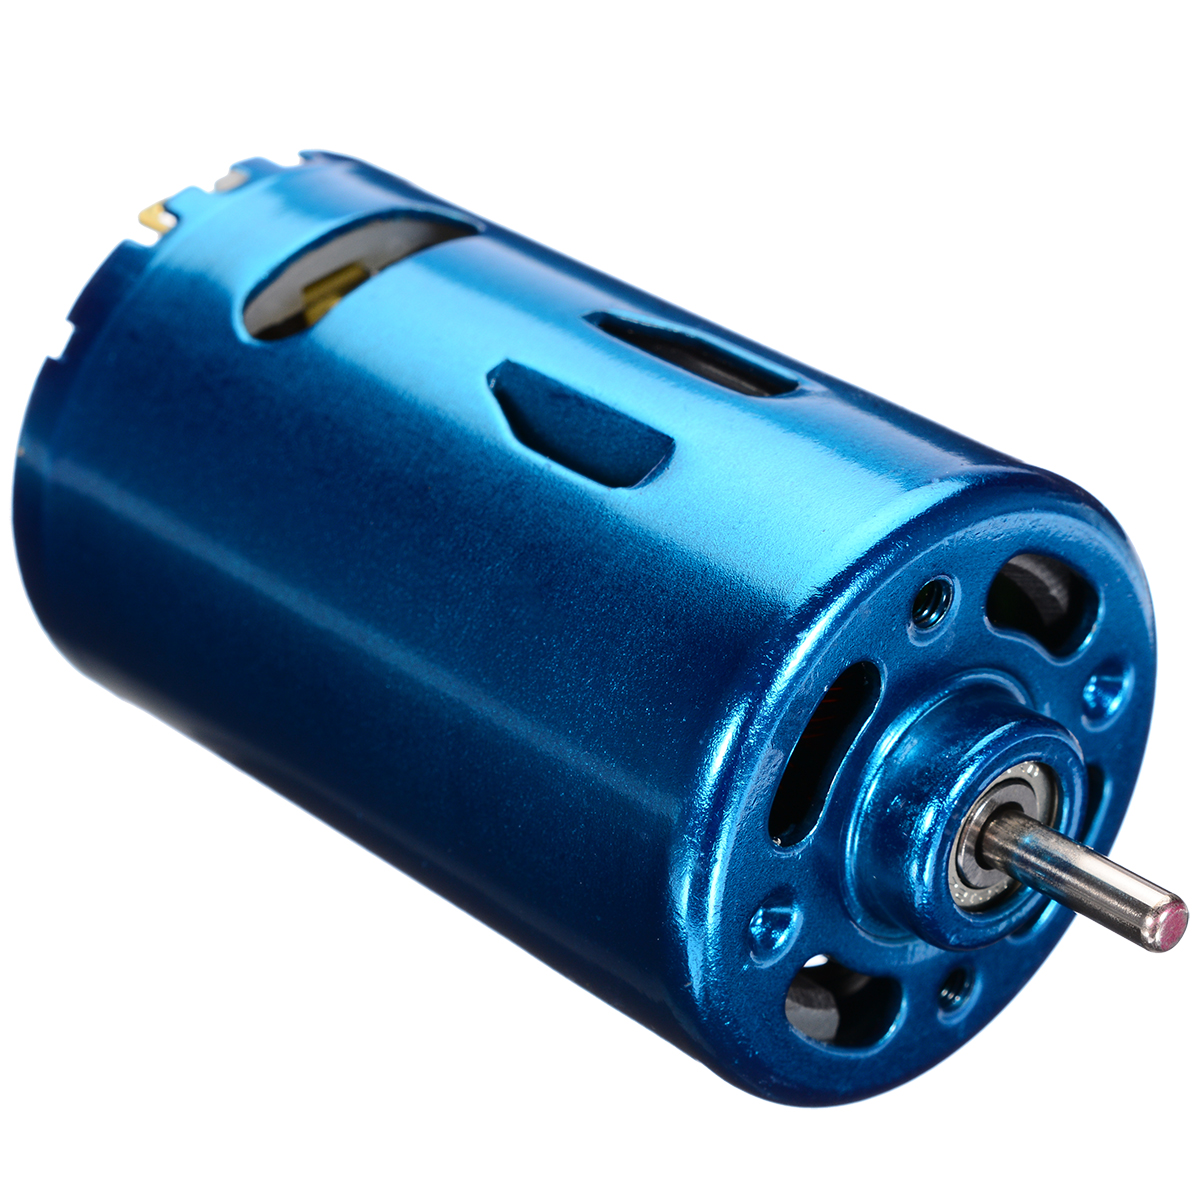 DC 6V-24V RS-550 Motor 30000RPM High Speed Large Torque Model Replacement For RC Car BoatDC 6V-24V RS-550 Motor 30000RPM High Speed Large Torque Model Replacement For RC Car Boat